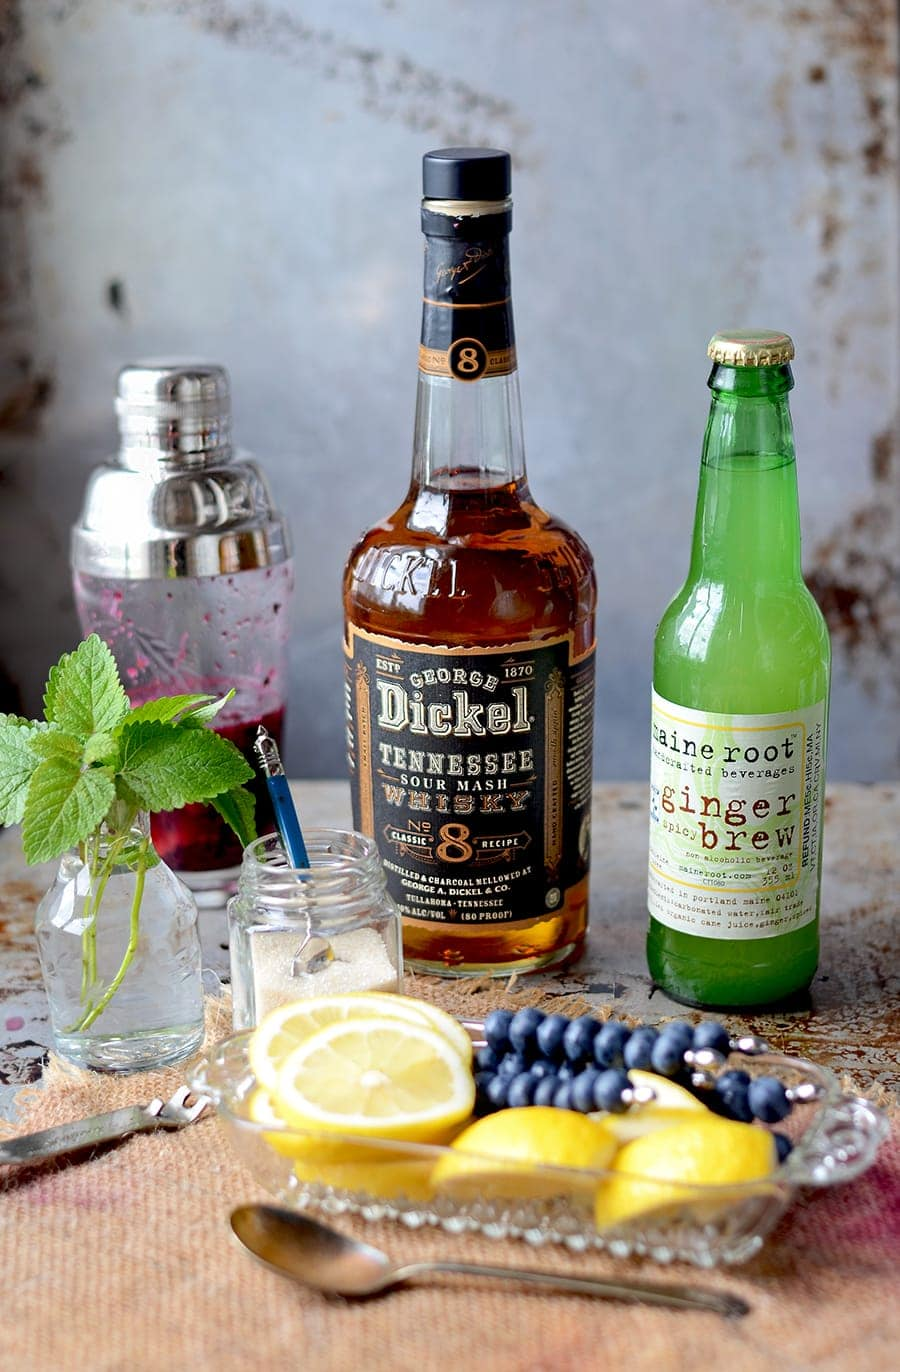 You're going to love this Blueberry Whiskey Buck recipe! It's made with just a handful of simple ingredients, so say hello to your new favorite cocktail for impromptu parties!